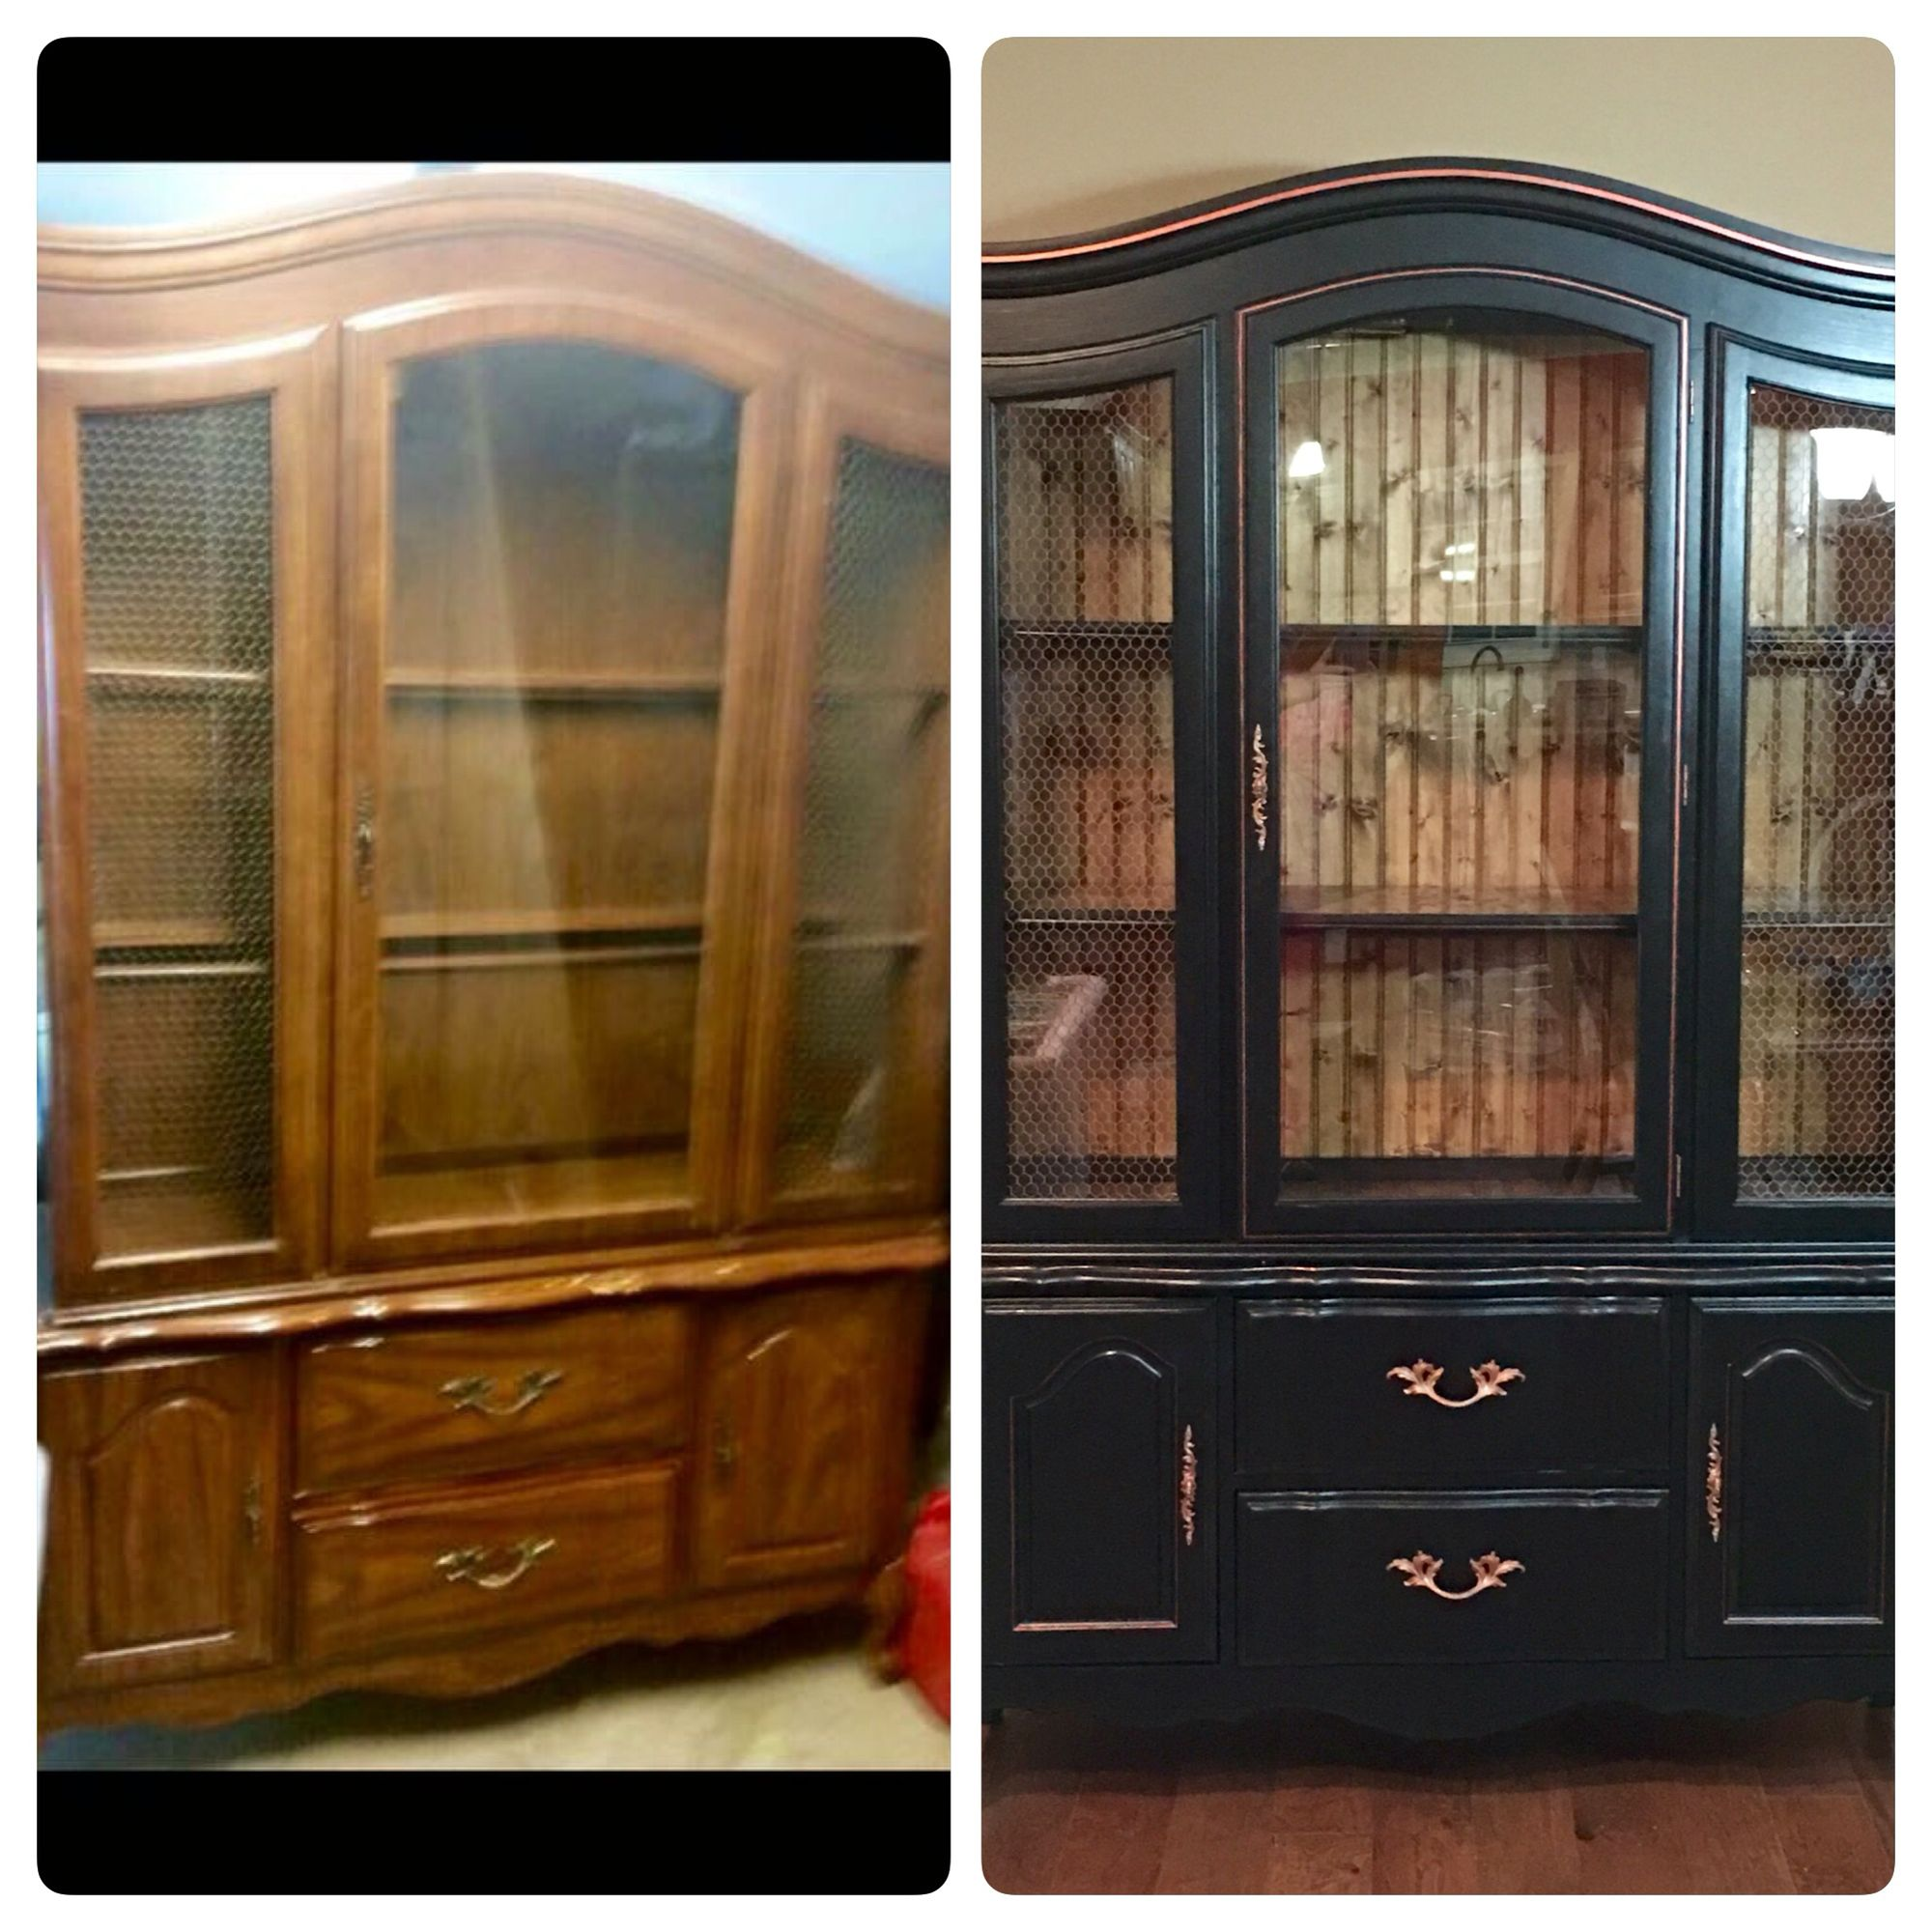 Diy Refinished And Painted Cabinet Reviews: BEFORE & AFTER China Cabinet I Refinished. Got The Ugly